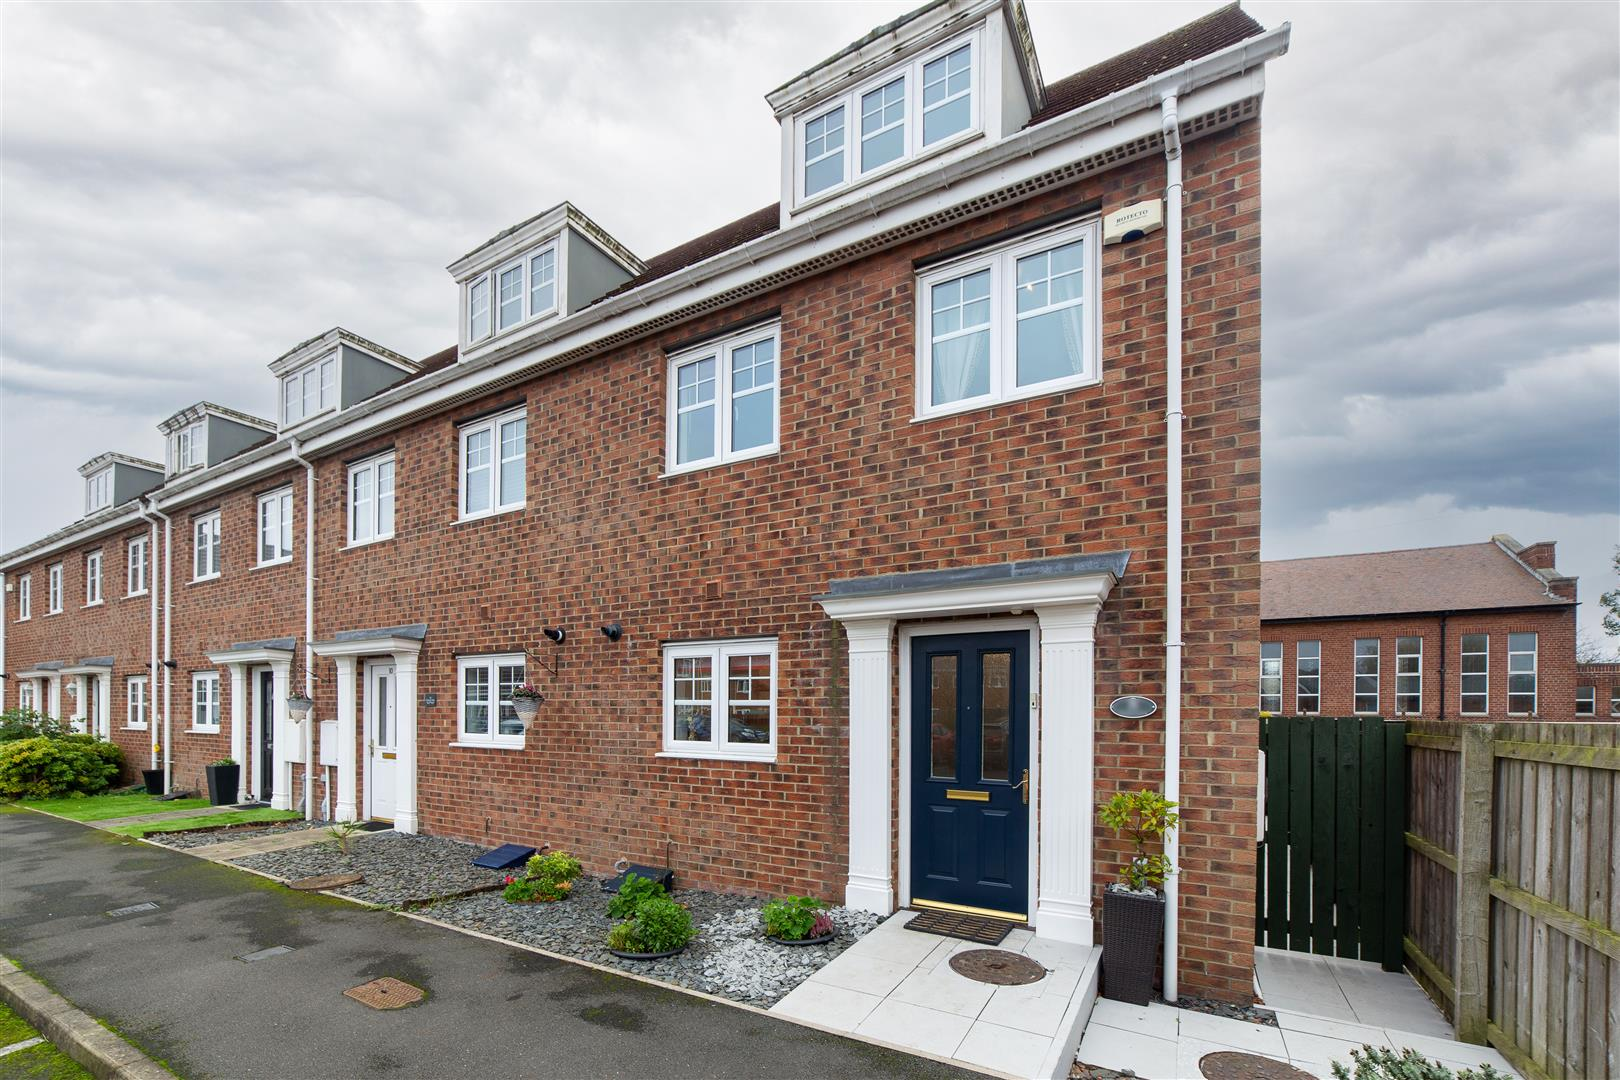 3 bed end of terrace house for sale in Longbenton, NE12 8TN 0